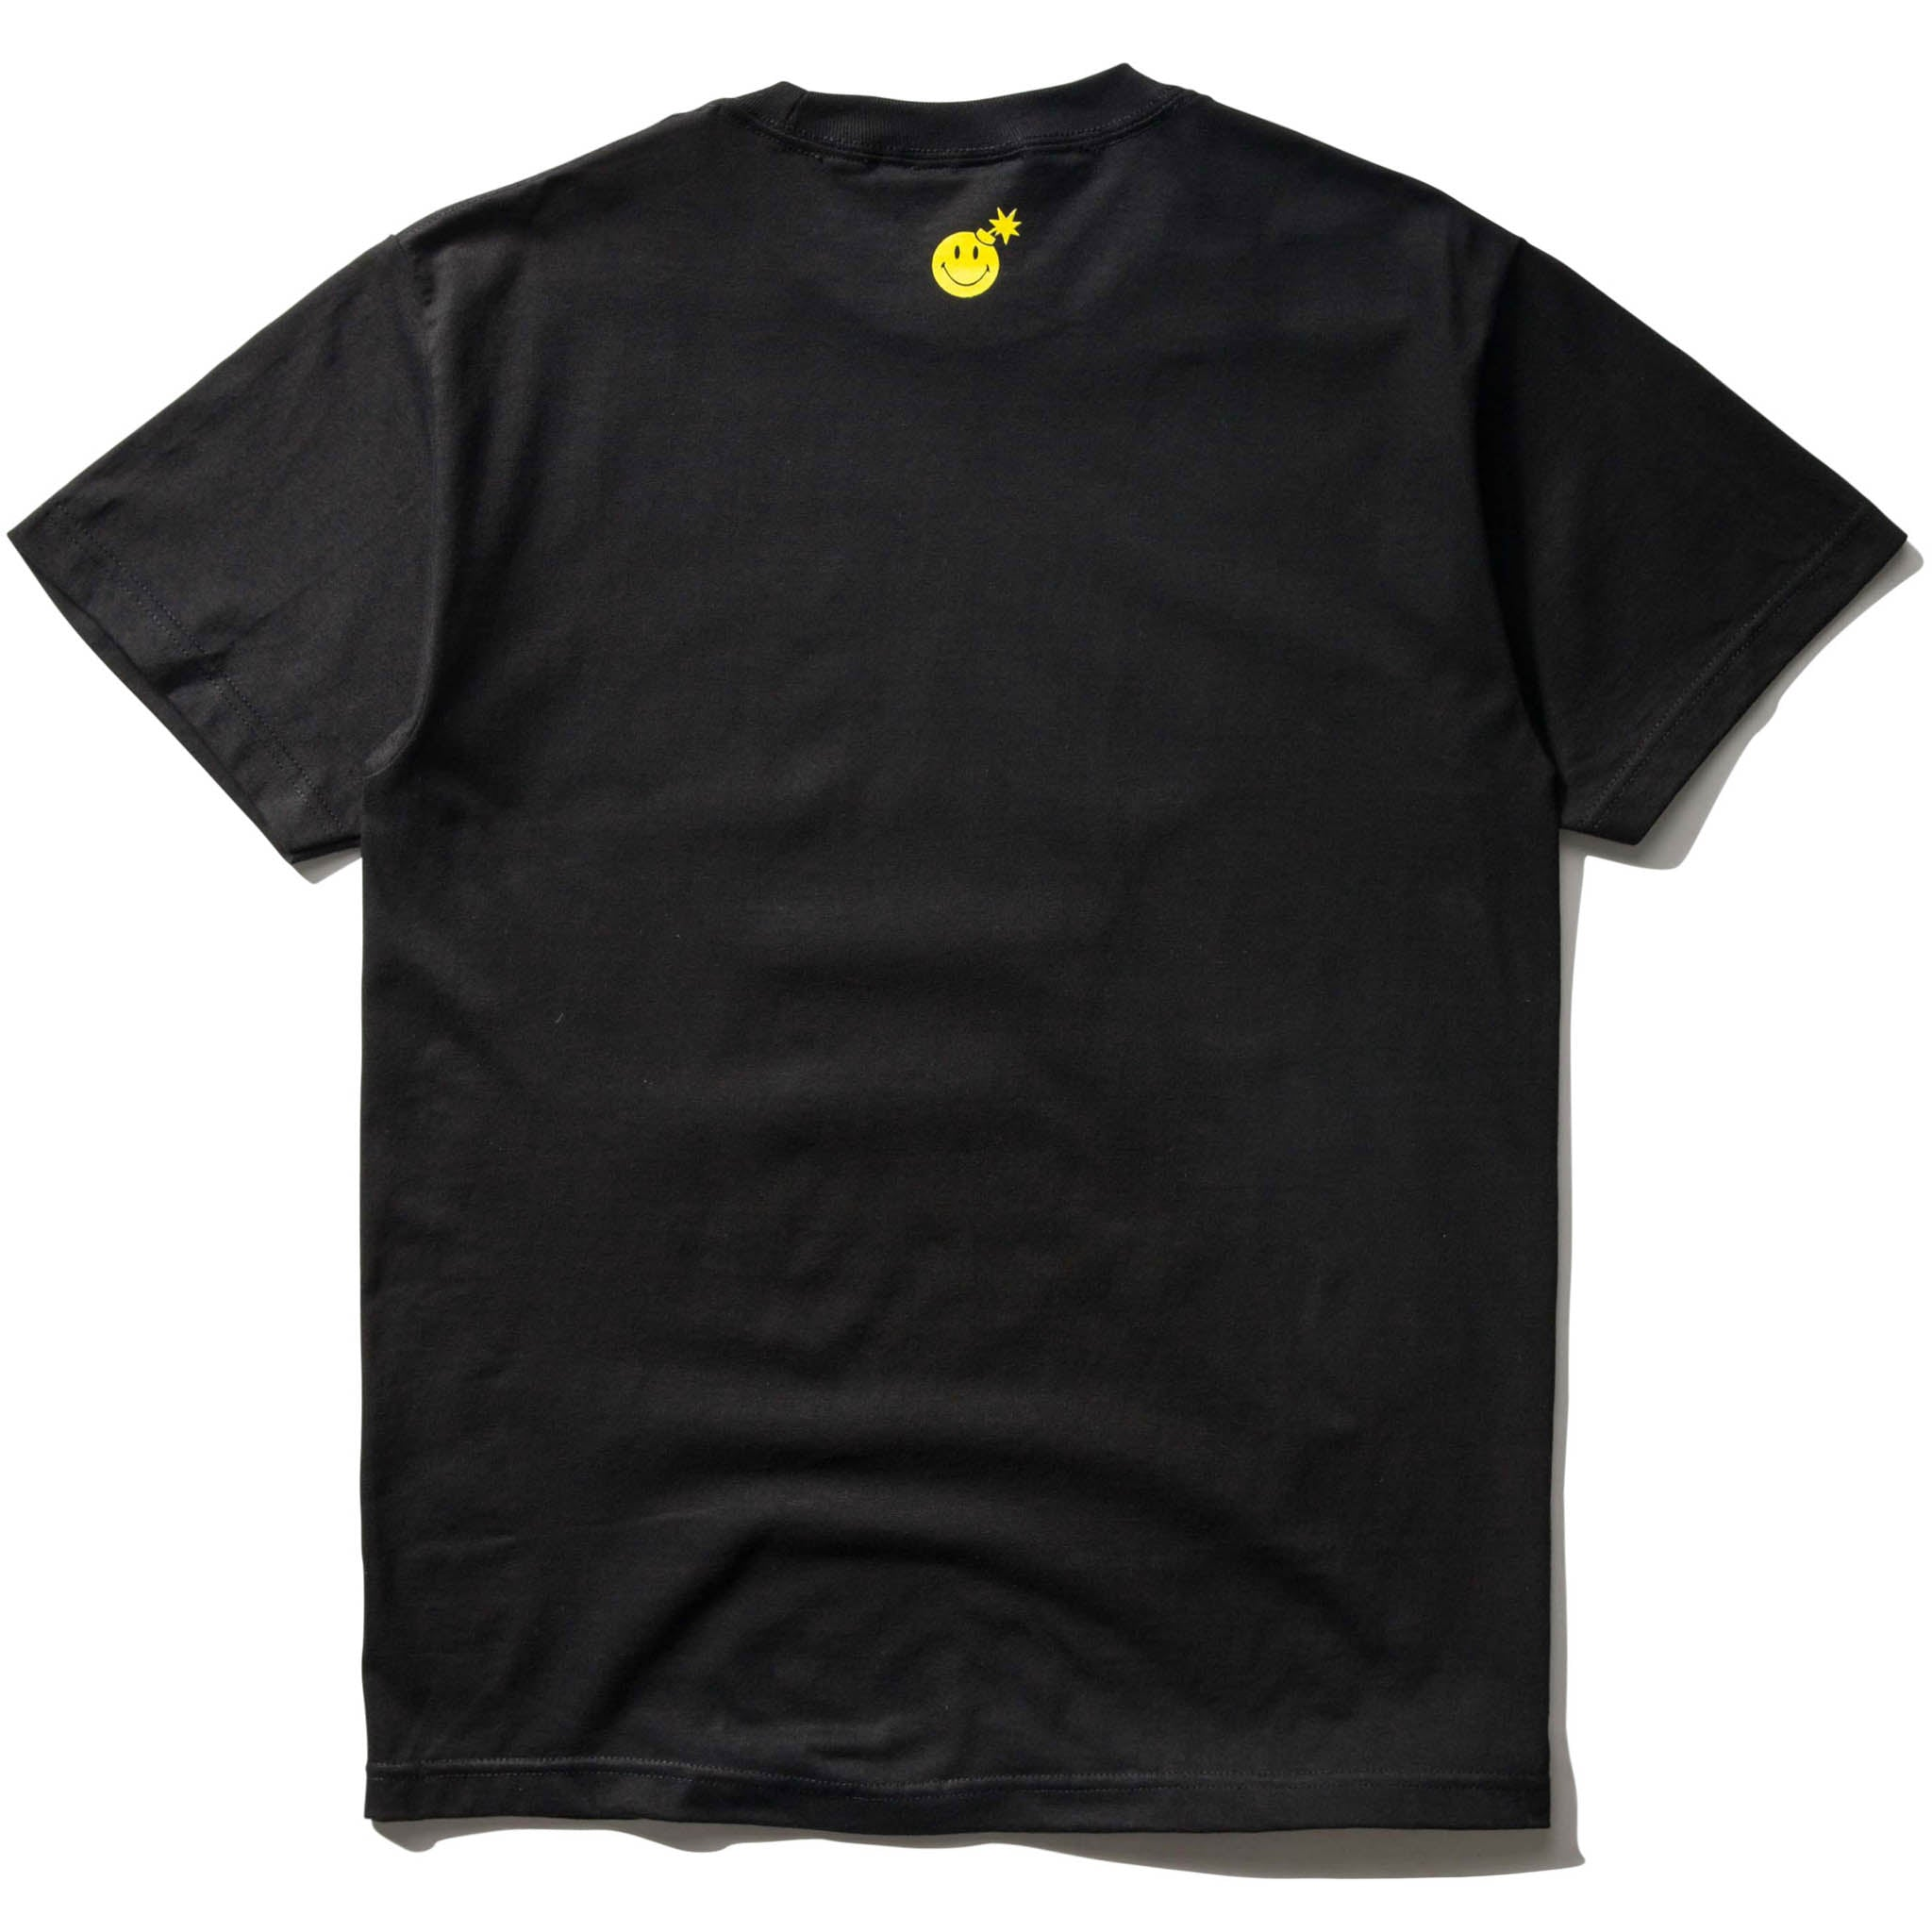 THE HUNDREDS x CTM HAPPY T-SHIRT (BLACK)